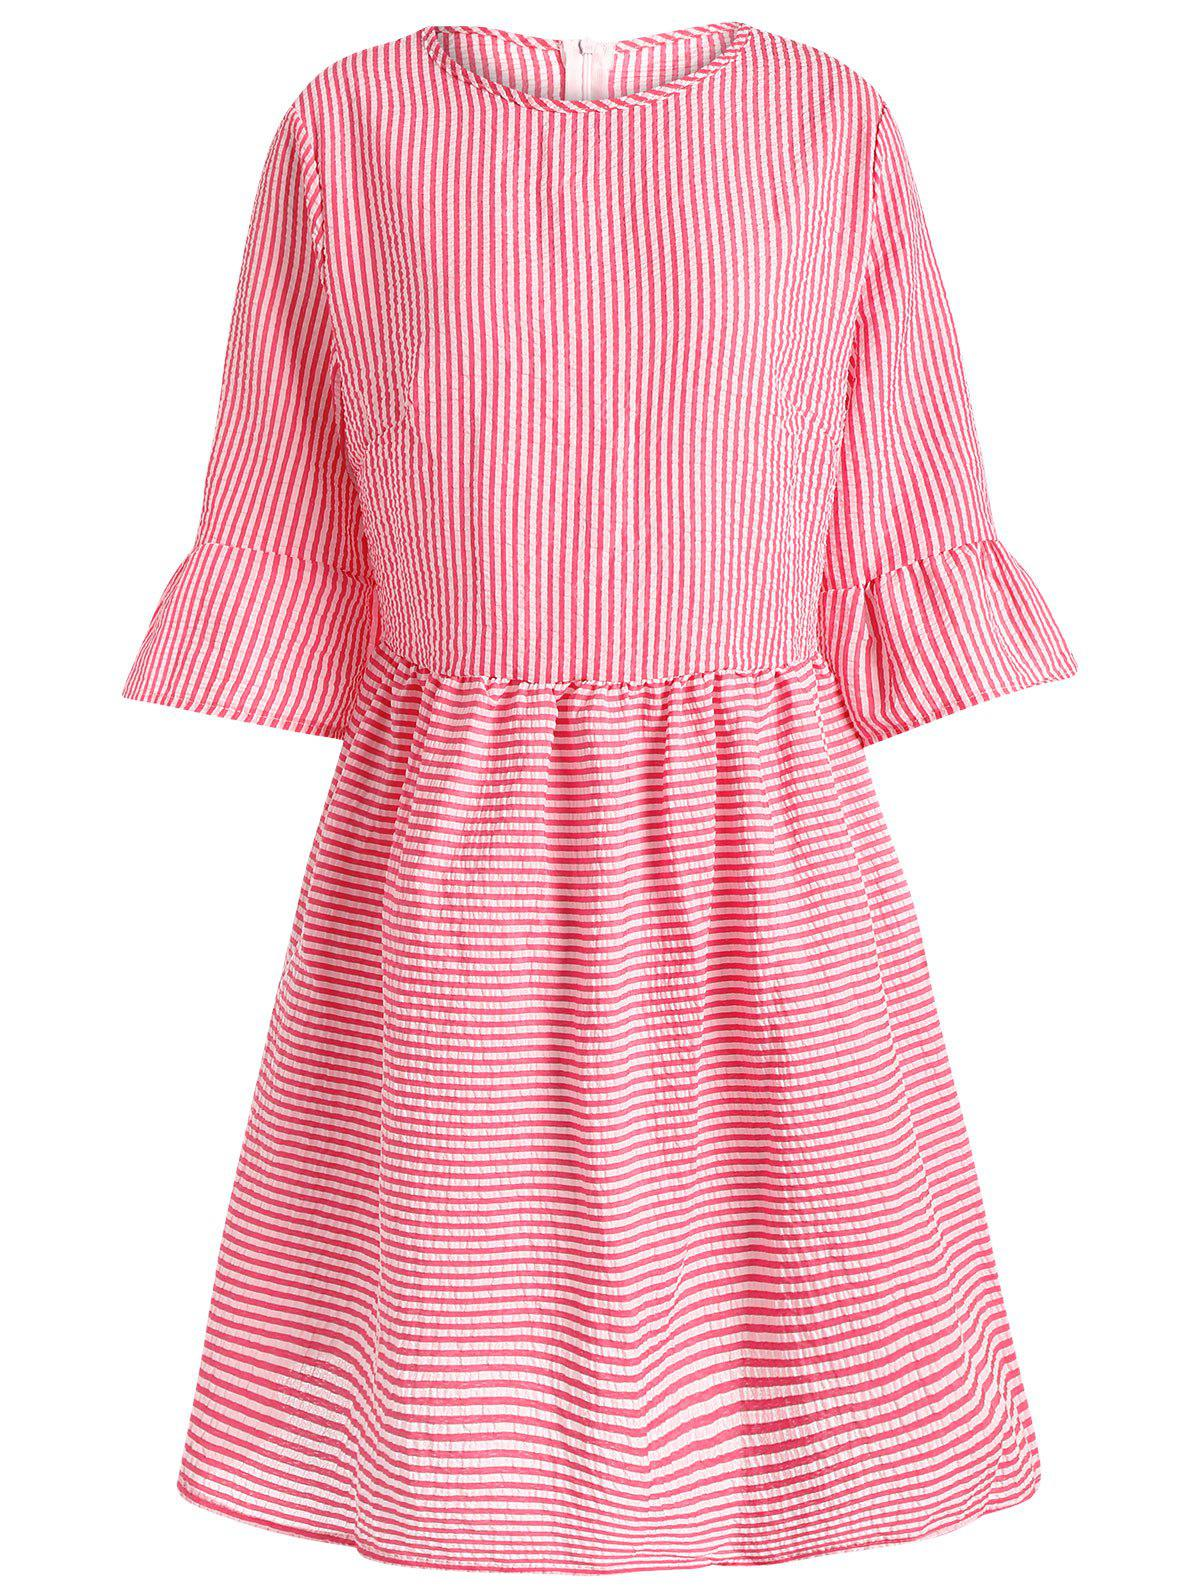 Flare Sleeve Casual Striped Dress - RED M